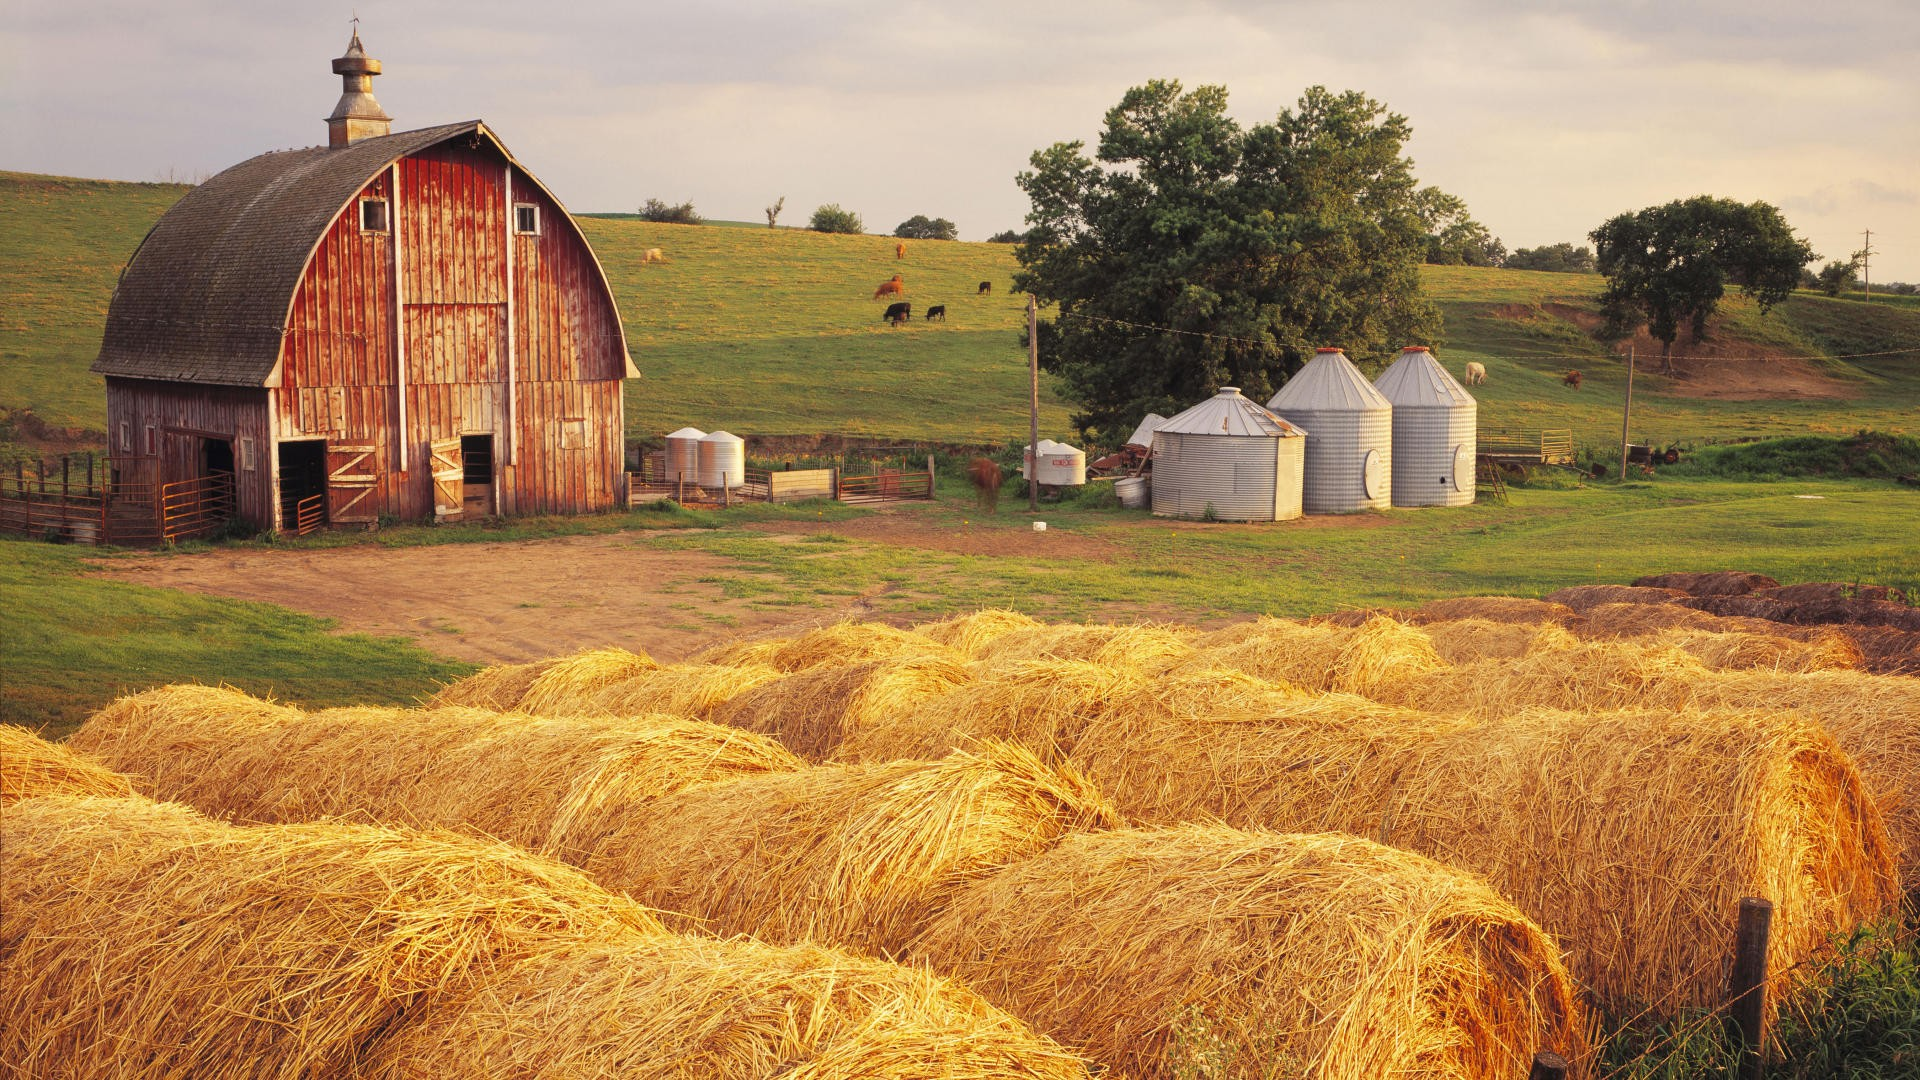 Life-On-the-Farm-Country-Farm-Computer-Desktop-Backgrounds-1920x1080-ID-wallpaper-wp3807659